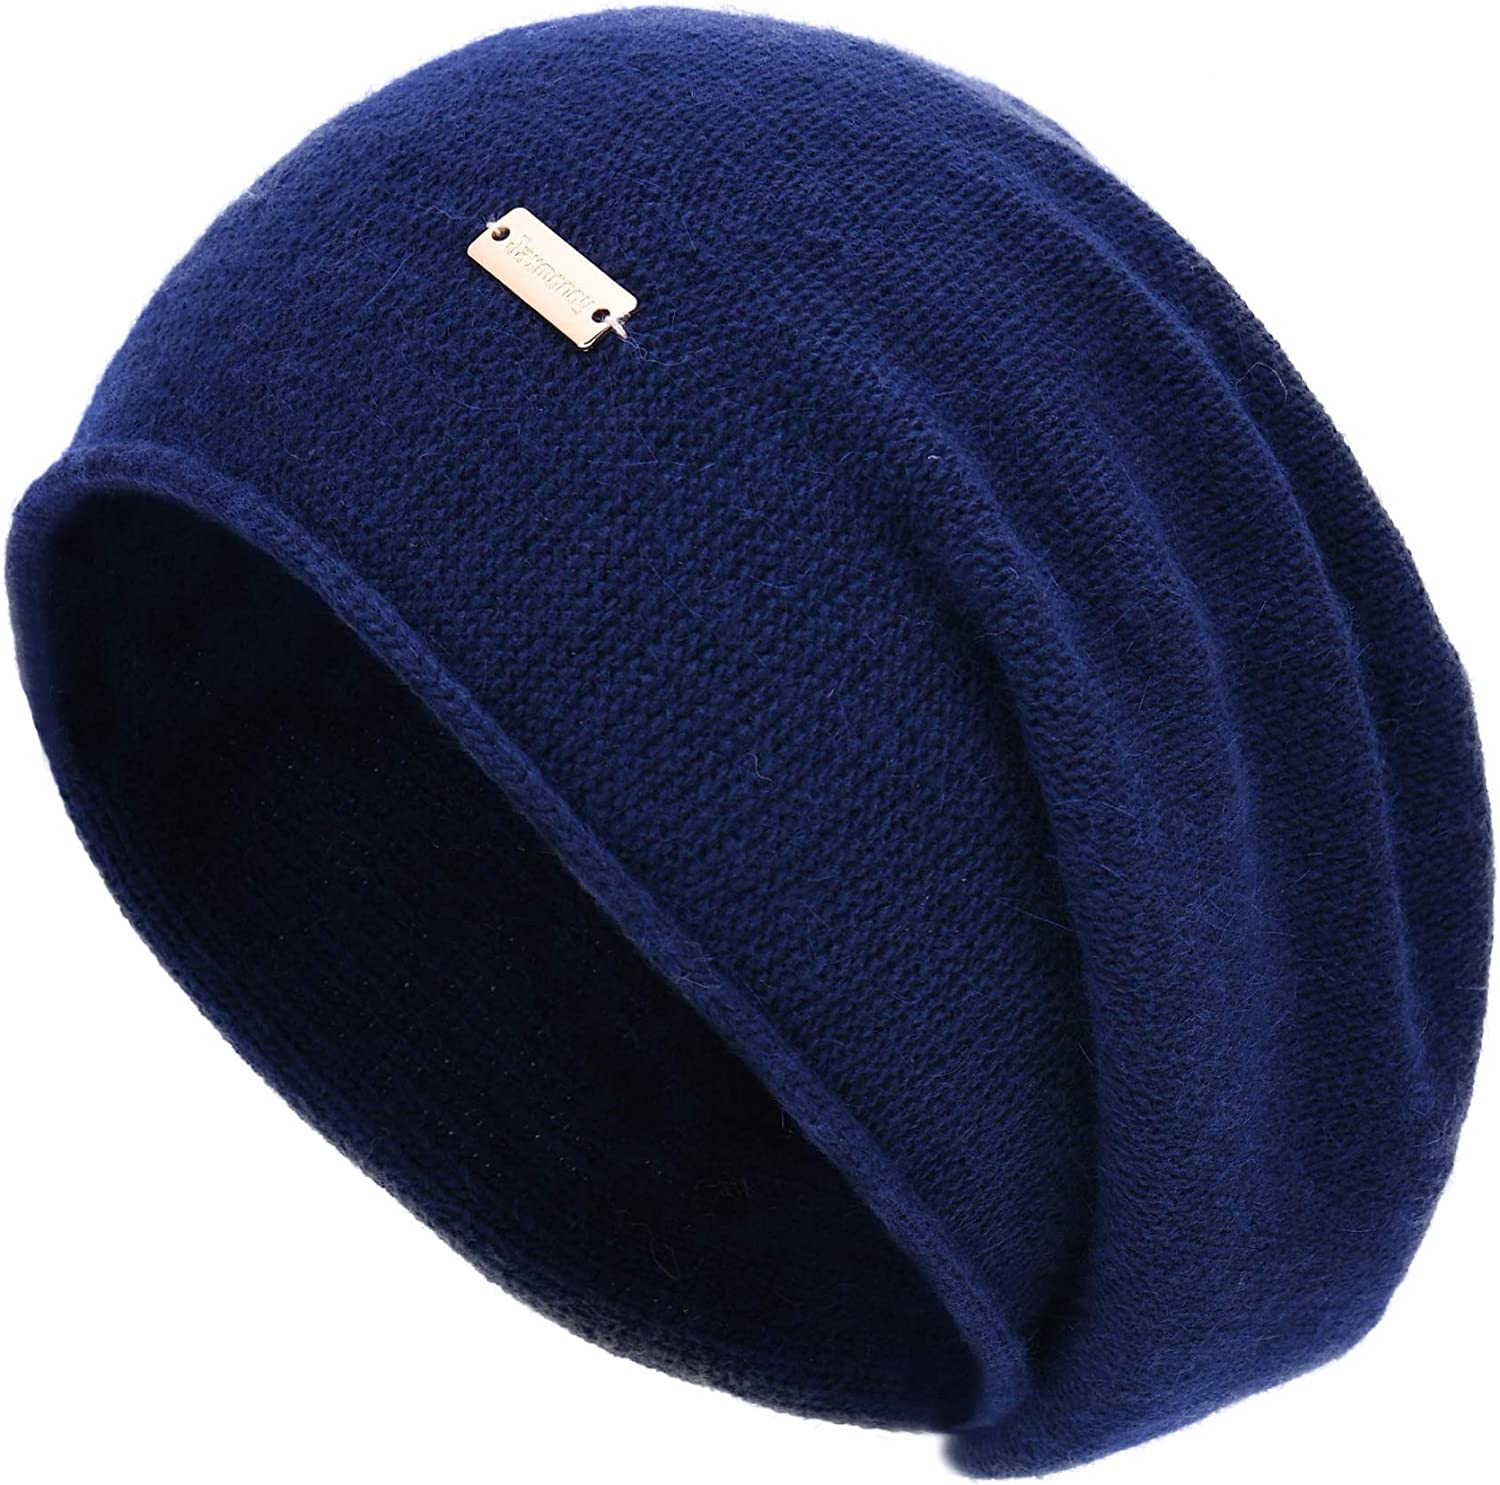 jaxmonoy Cashmere Slouchy Knit Beanie Hat for Women Winter Soft Warm Ladies Wool Knitted Skull Beanies Cap